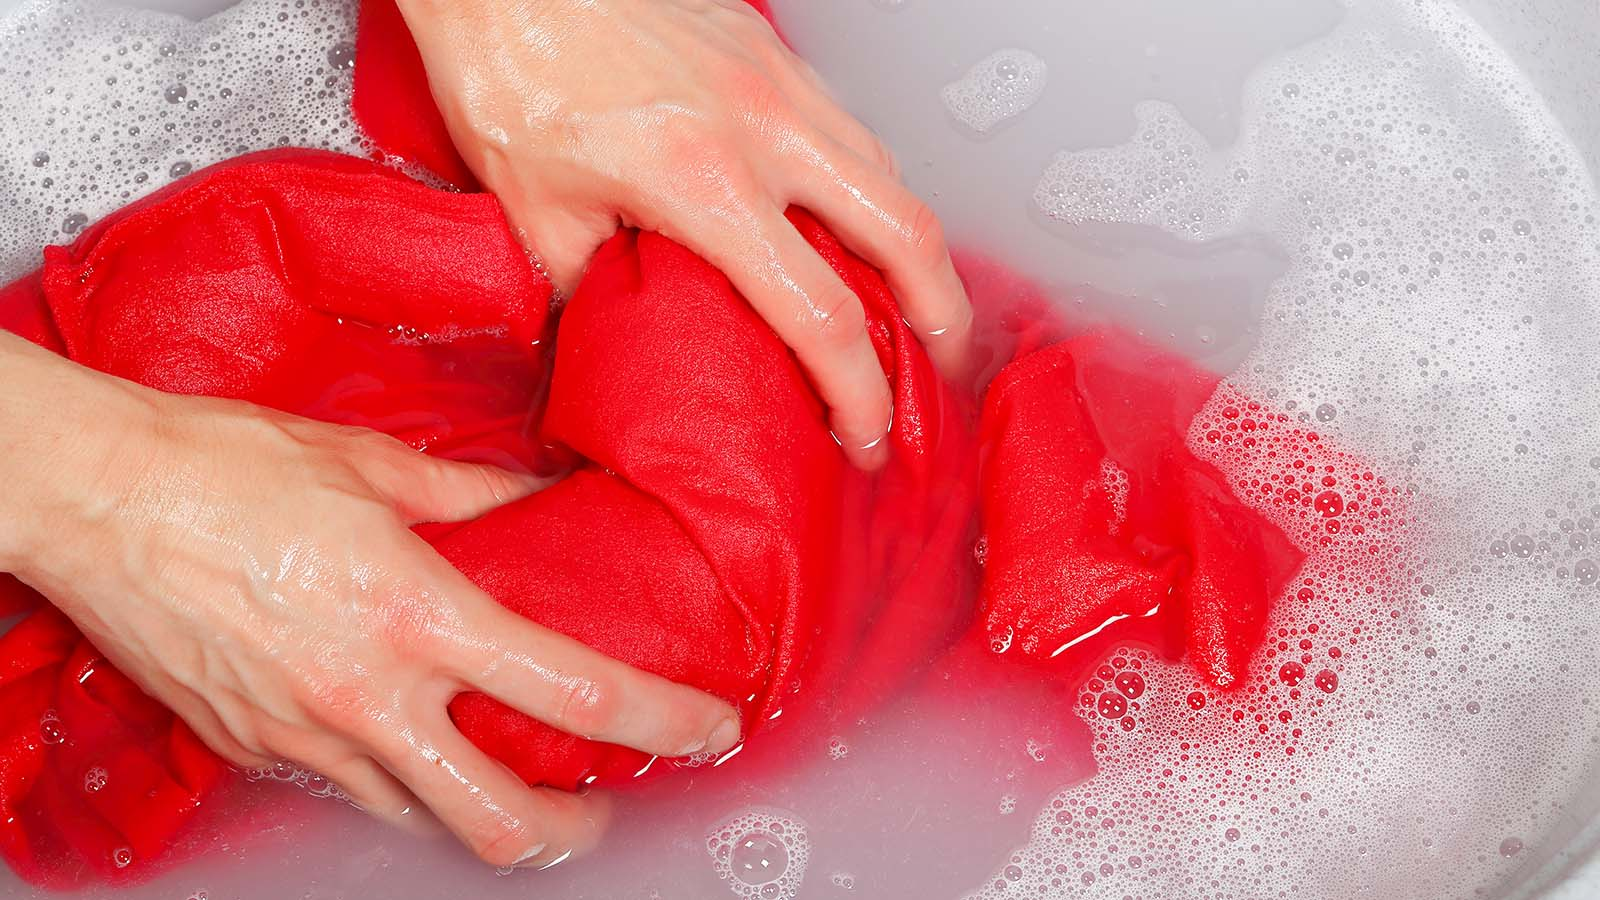 Person hand washing clothing